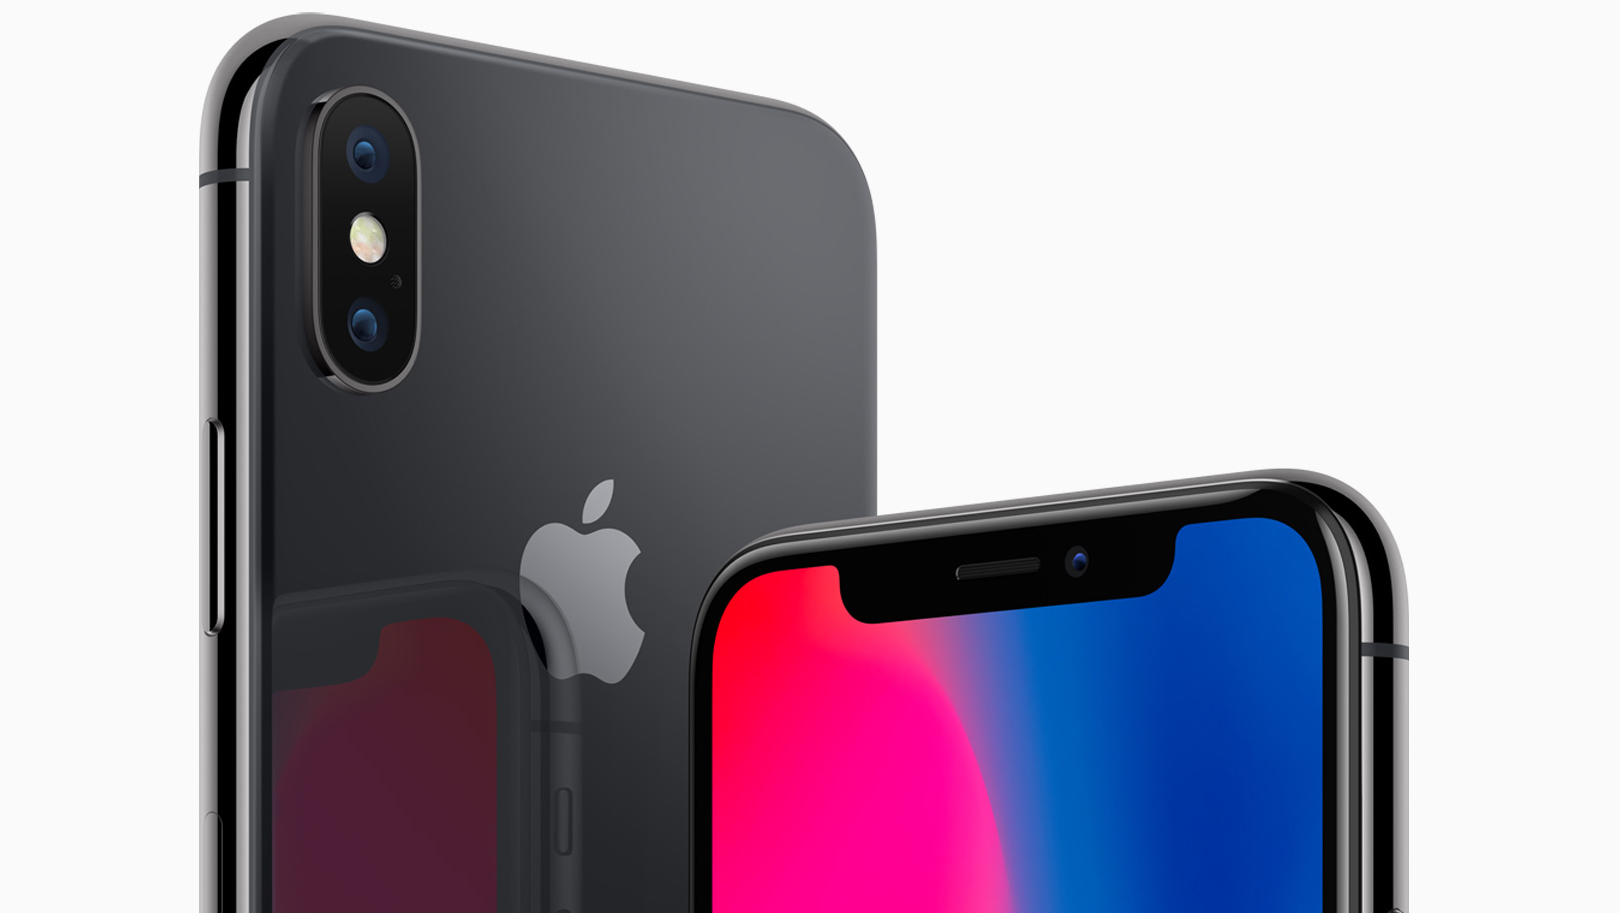 iphone x wo lieferbar